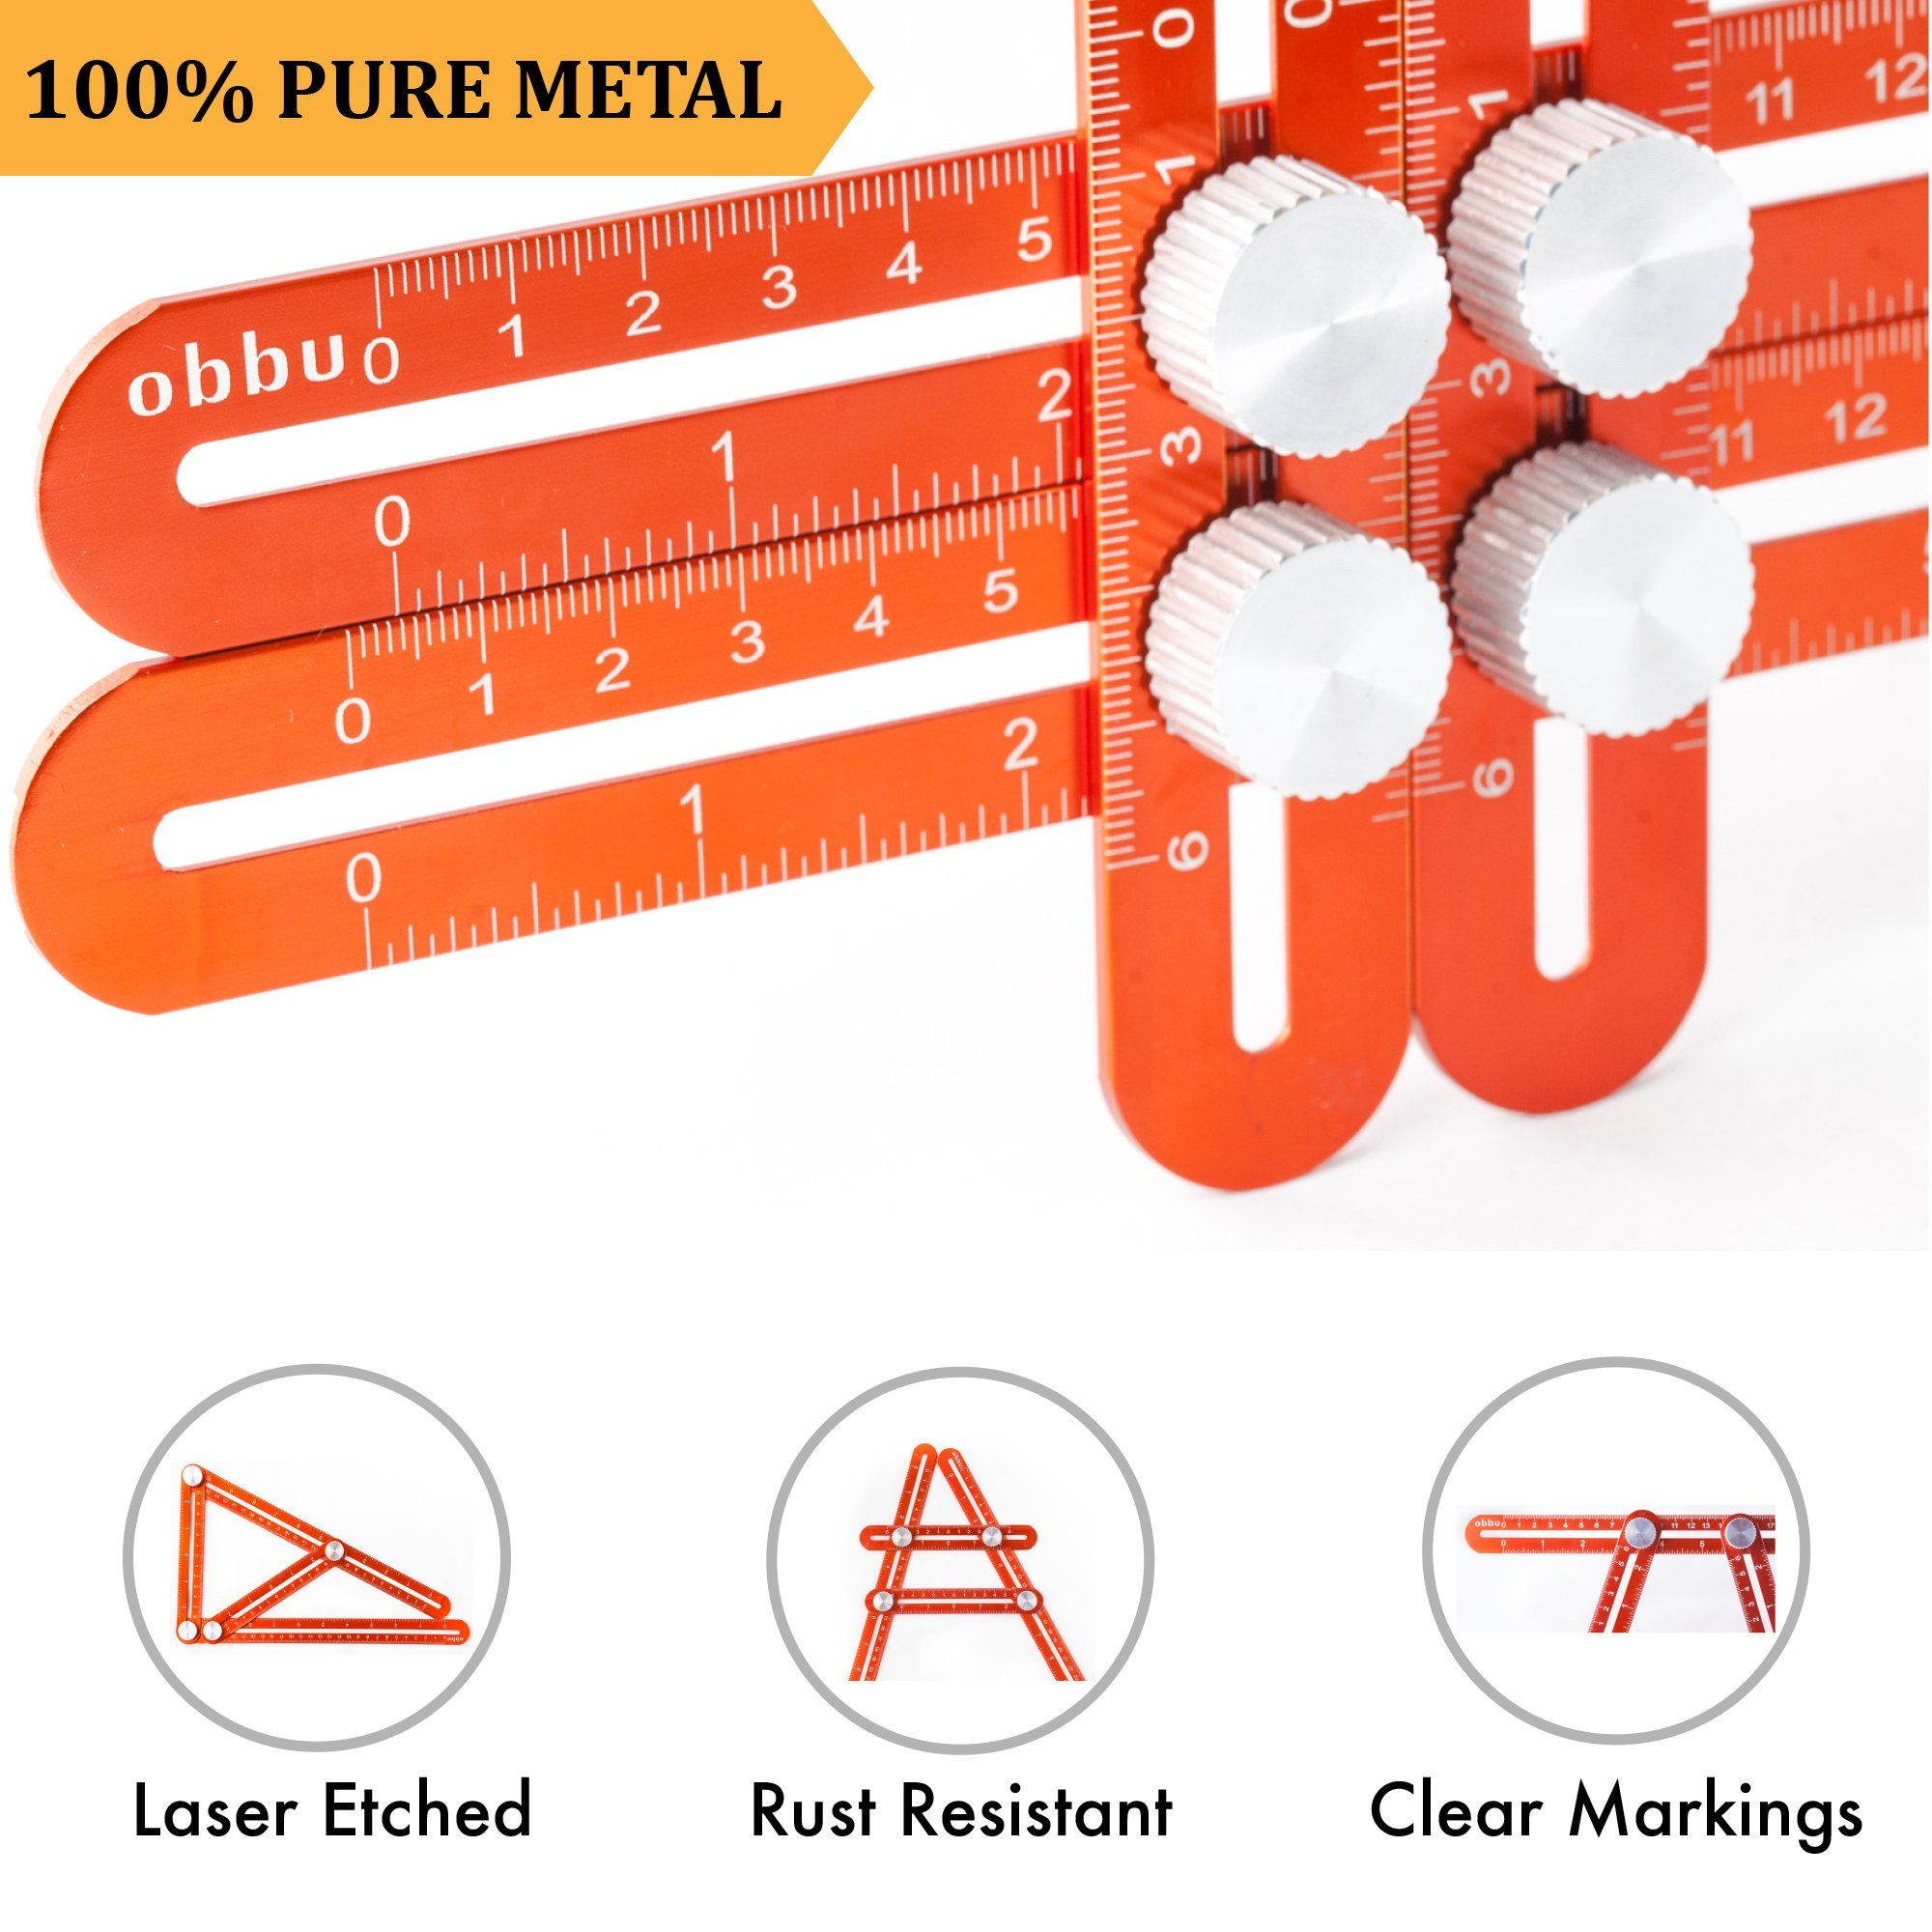 Obbu Universal Multi Angle Measuring Ruler – Premium Aluminum Metal – Angle Measuring Multi Tool – No Plastic – Laser Etched – Template Tool for Tool Box for Men – Gift for Handymen Crafts men (Red)